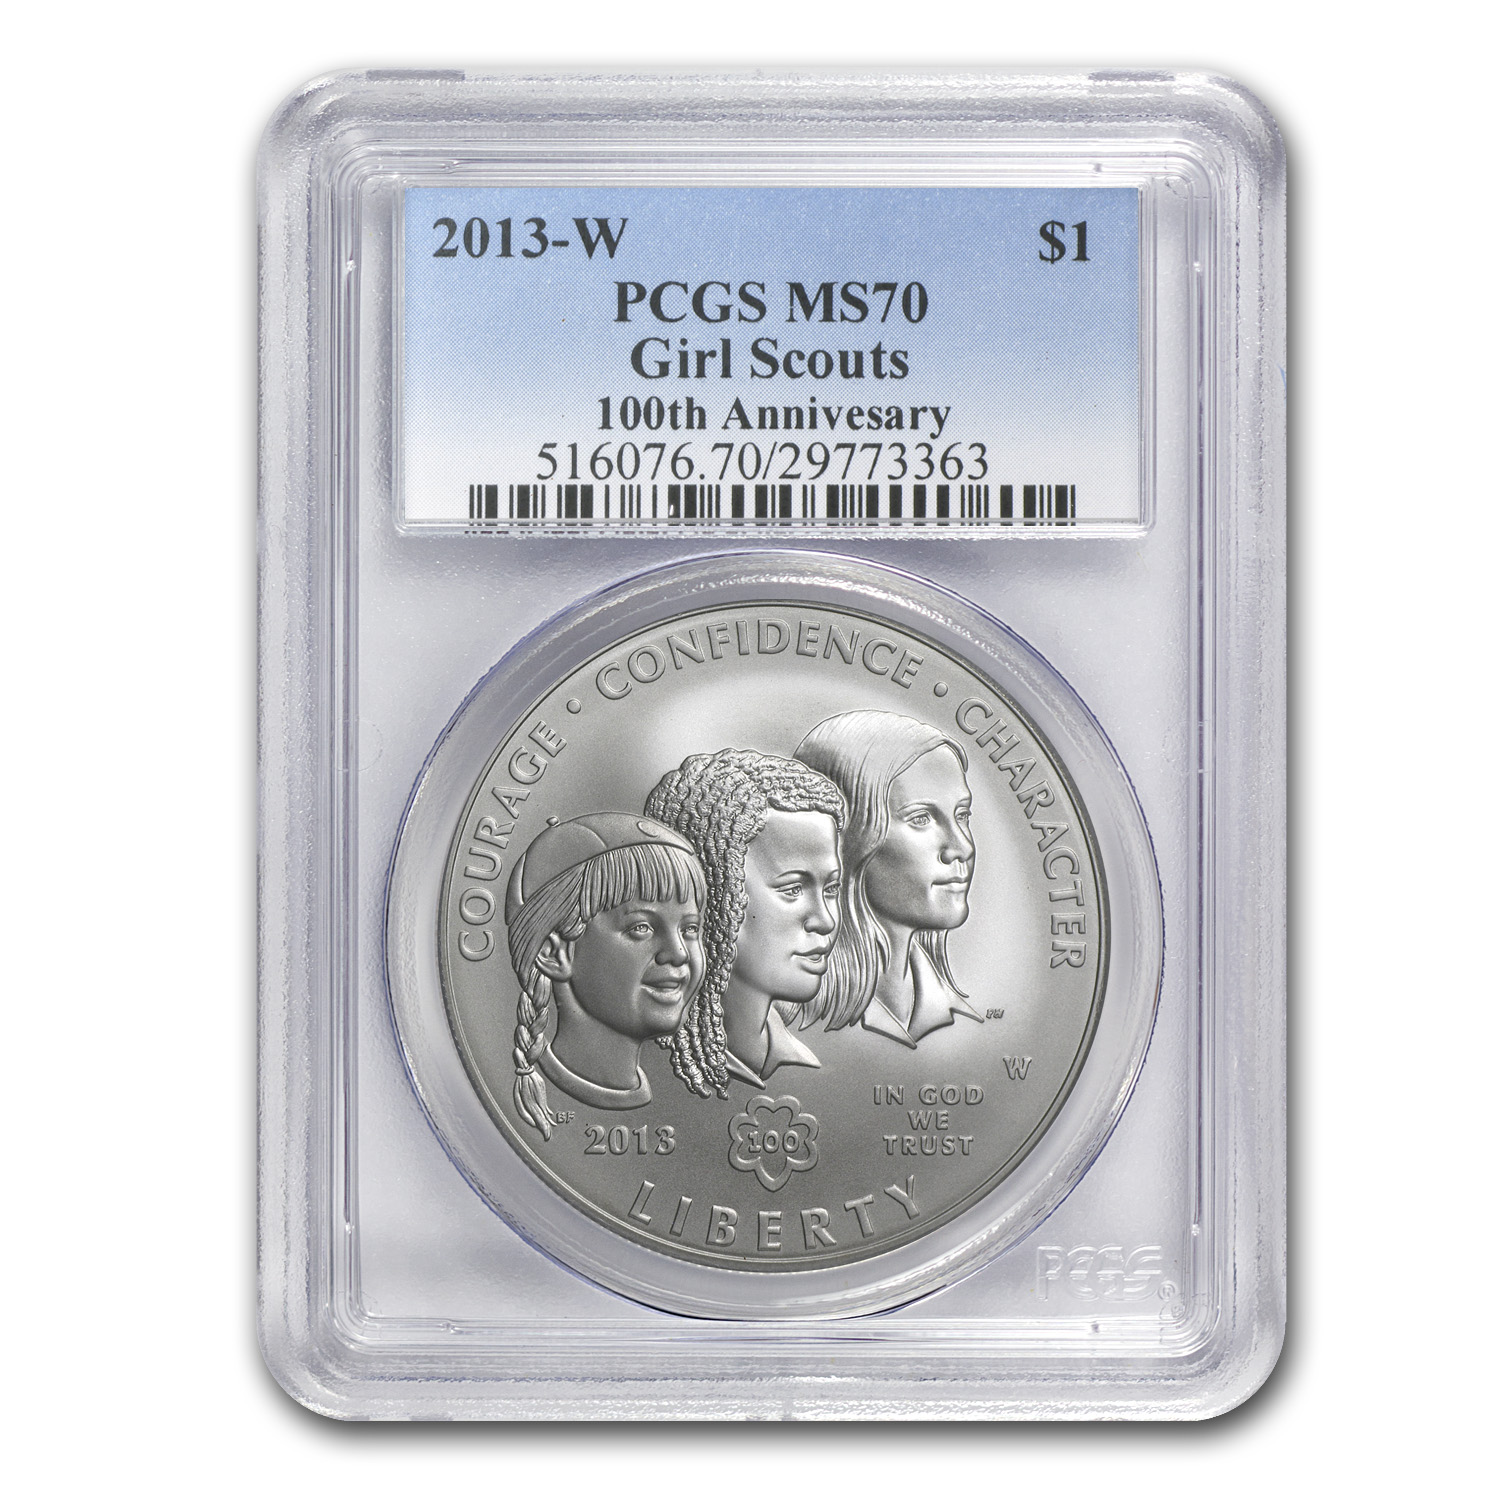 2013-W Girl Scouts $1 Silver Commemorative - MS-70 PCGS